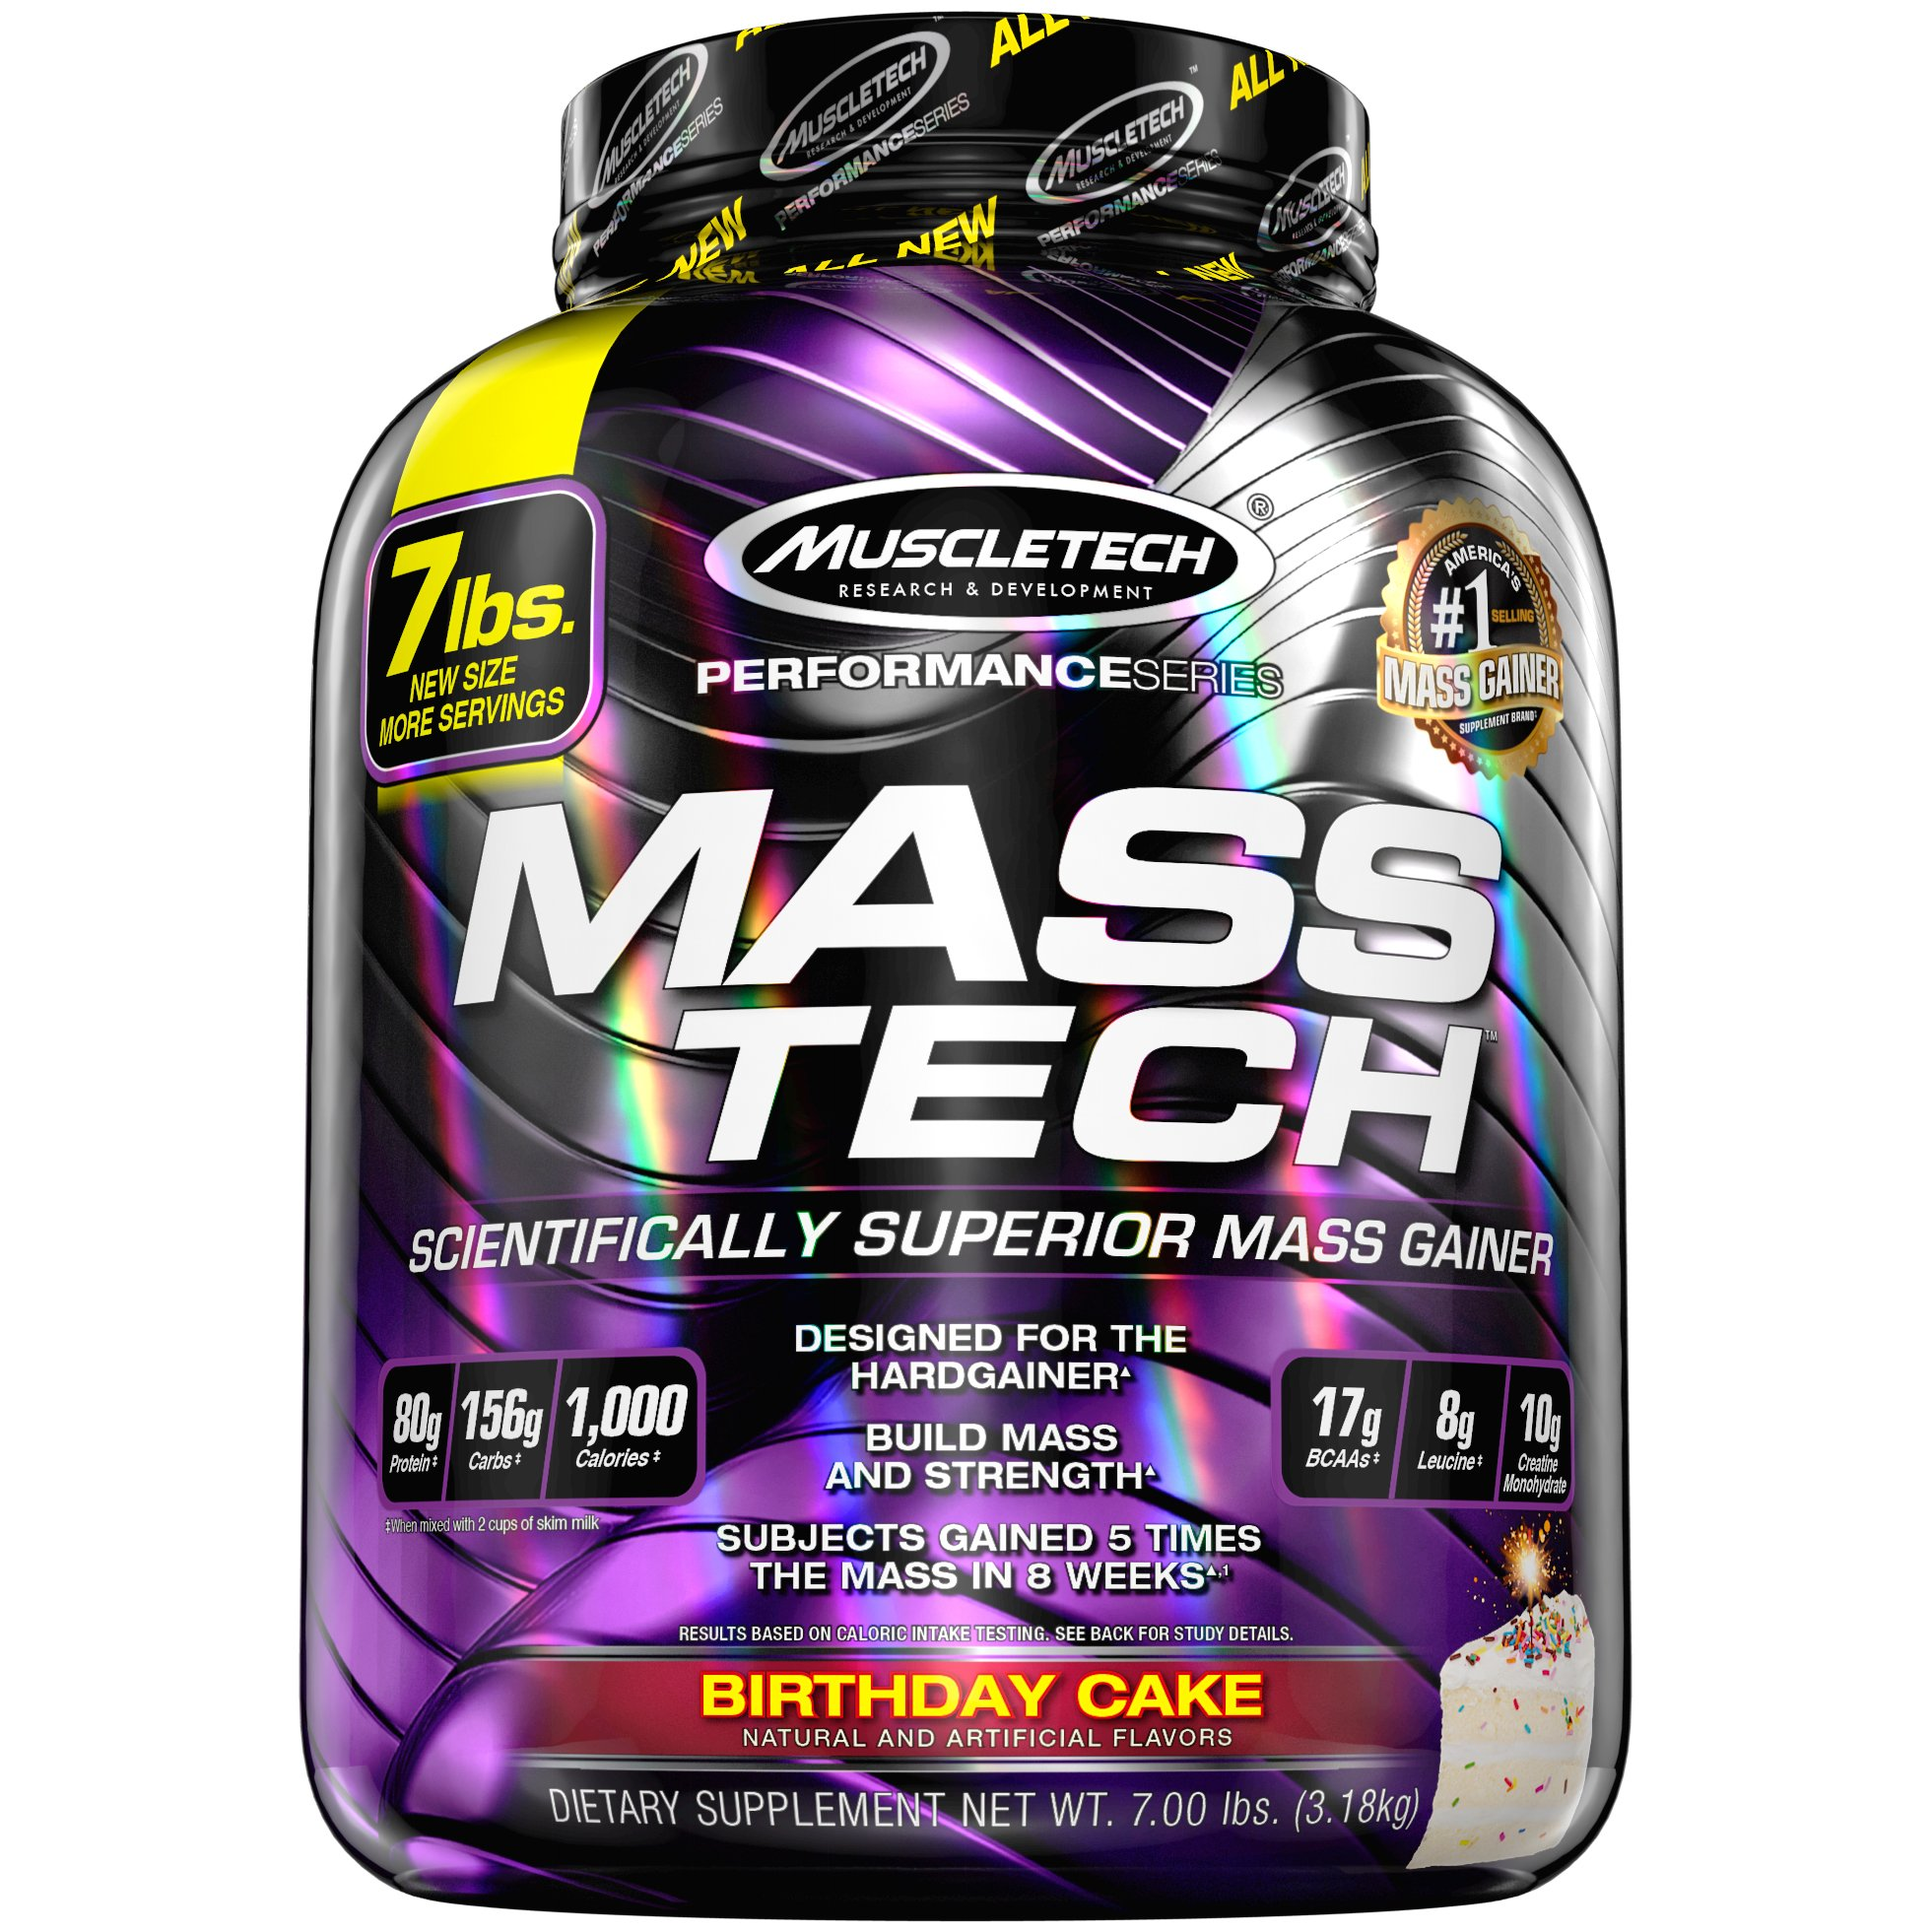 MuscleTech Mass Tech Pro Weight Gainer Protein Powder, Birthday Cake, 7lbs (3.18kg)